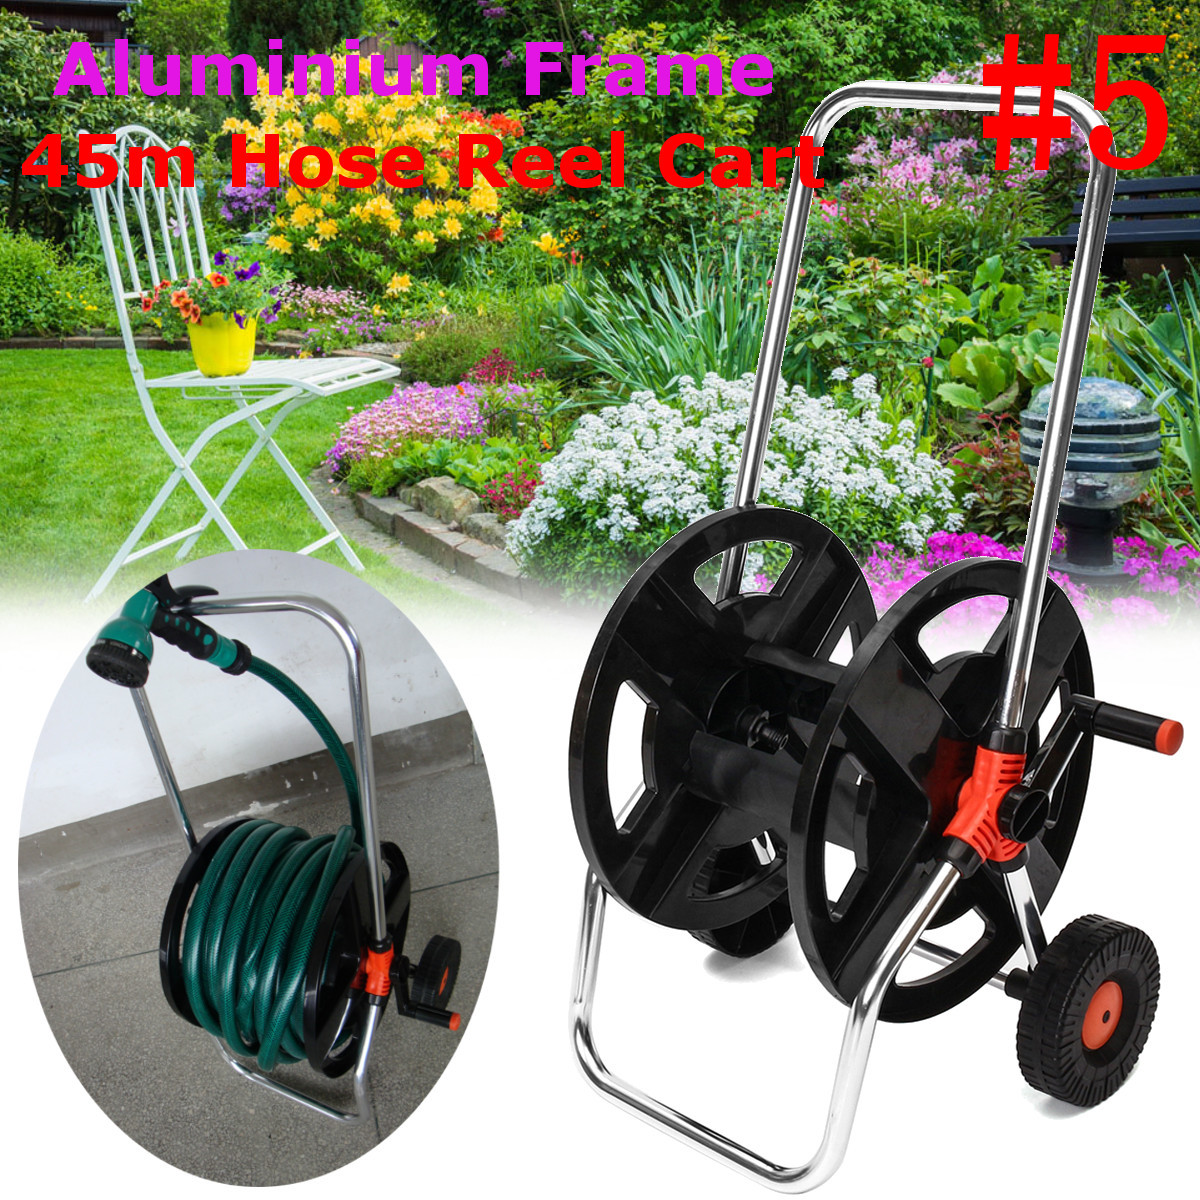 Portable Aluminum Garden Water Pipe Hose Reel Cart